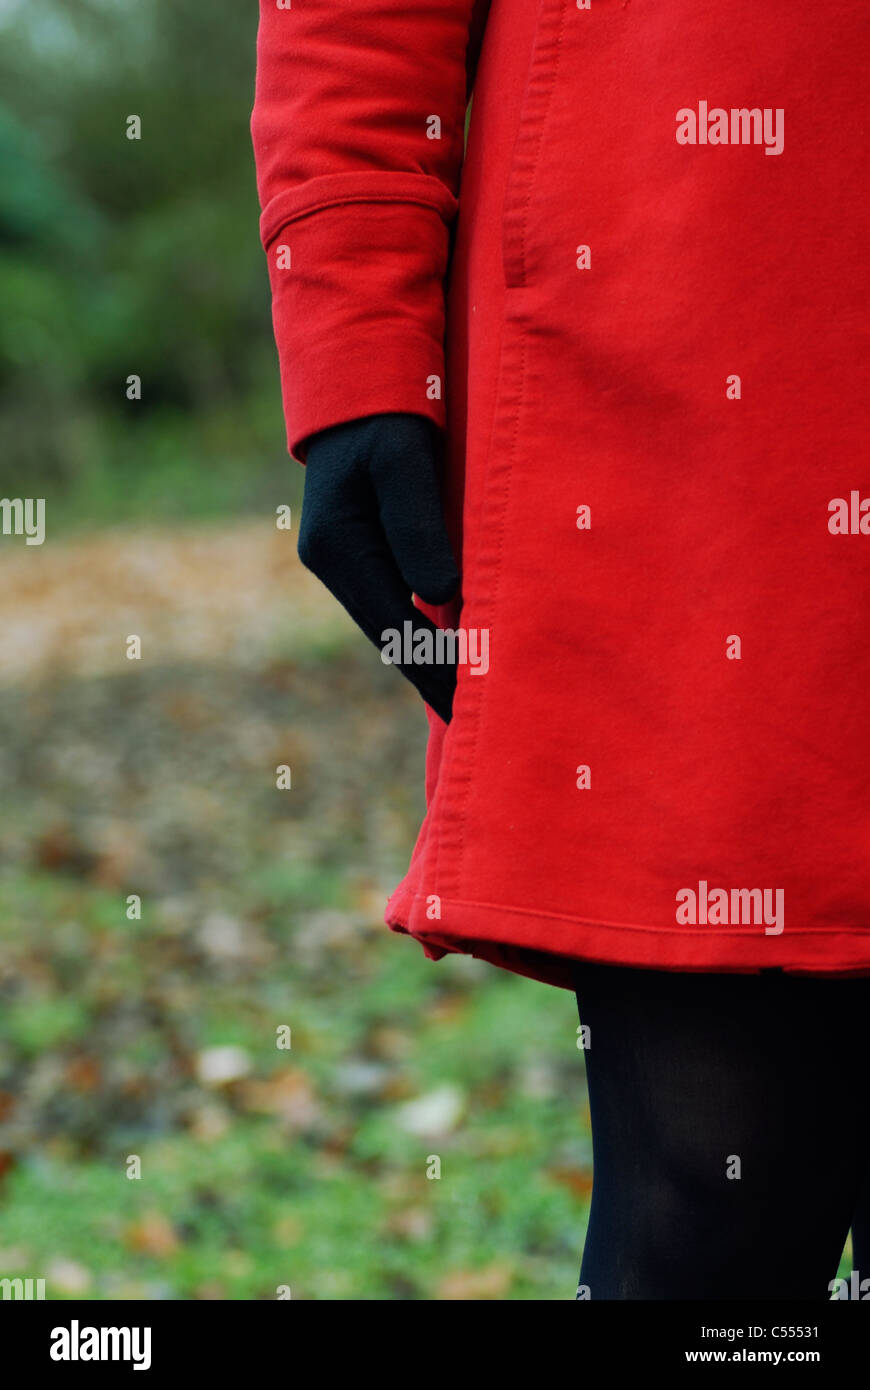 Woman in red coat and gloves standing outdoors - Stock Image